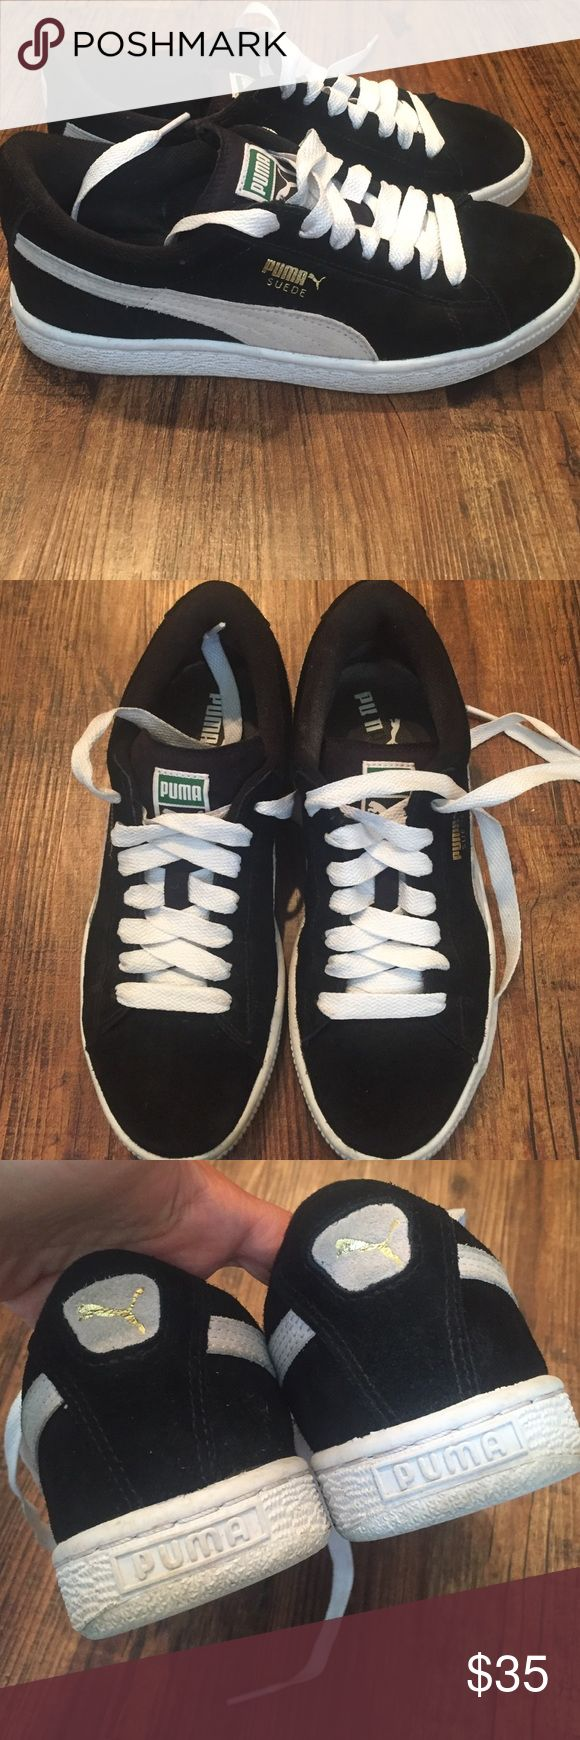 Black sued Puma shoes Only worn a few times, great condition. No pp or trades. Women's size 7. Puma Shoes Sneakers